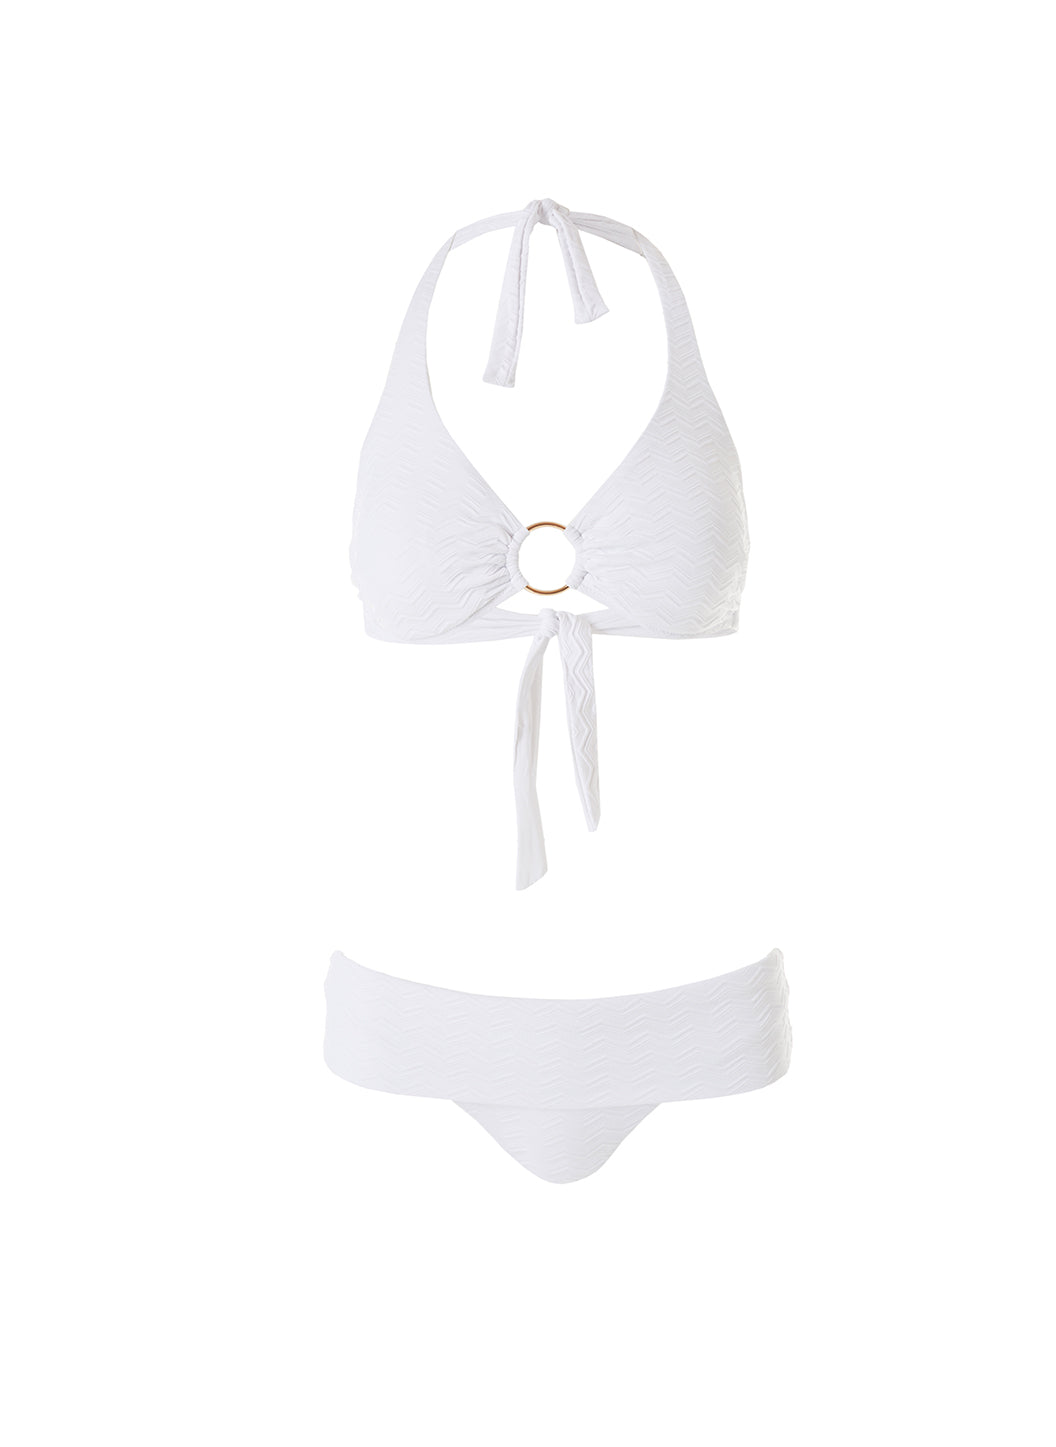 Exclusive Brussels White Zig Zag Halterneck Ring Supportive Bikini - Melissa Odabash New Arrivals